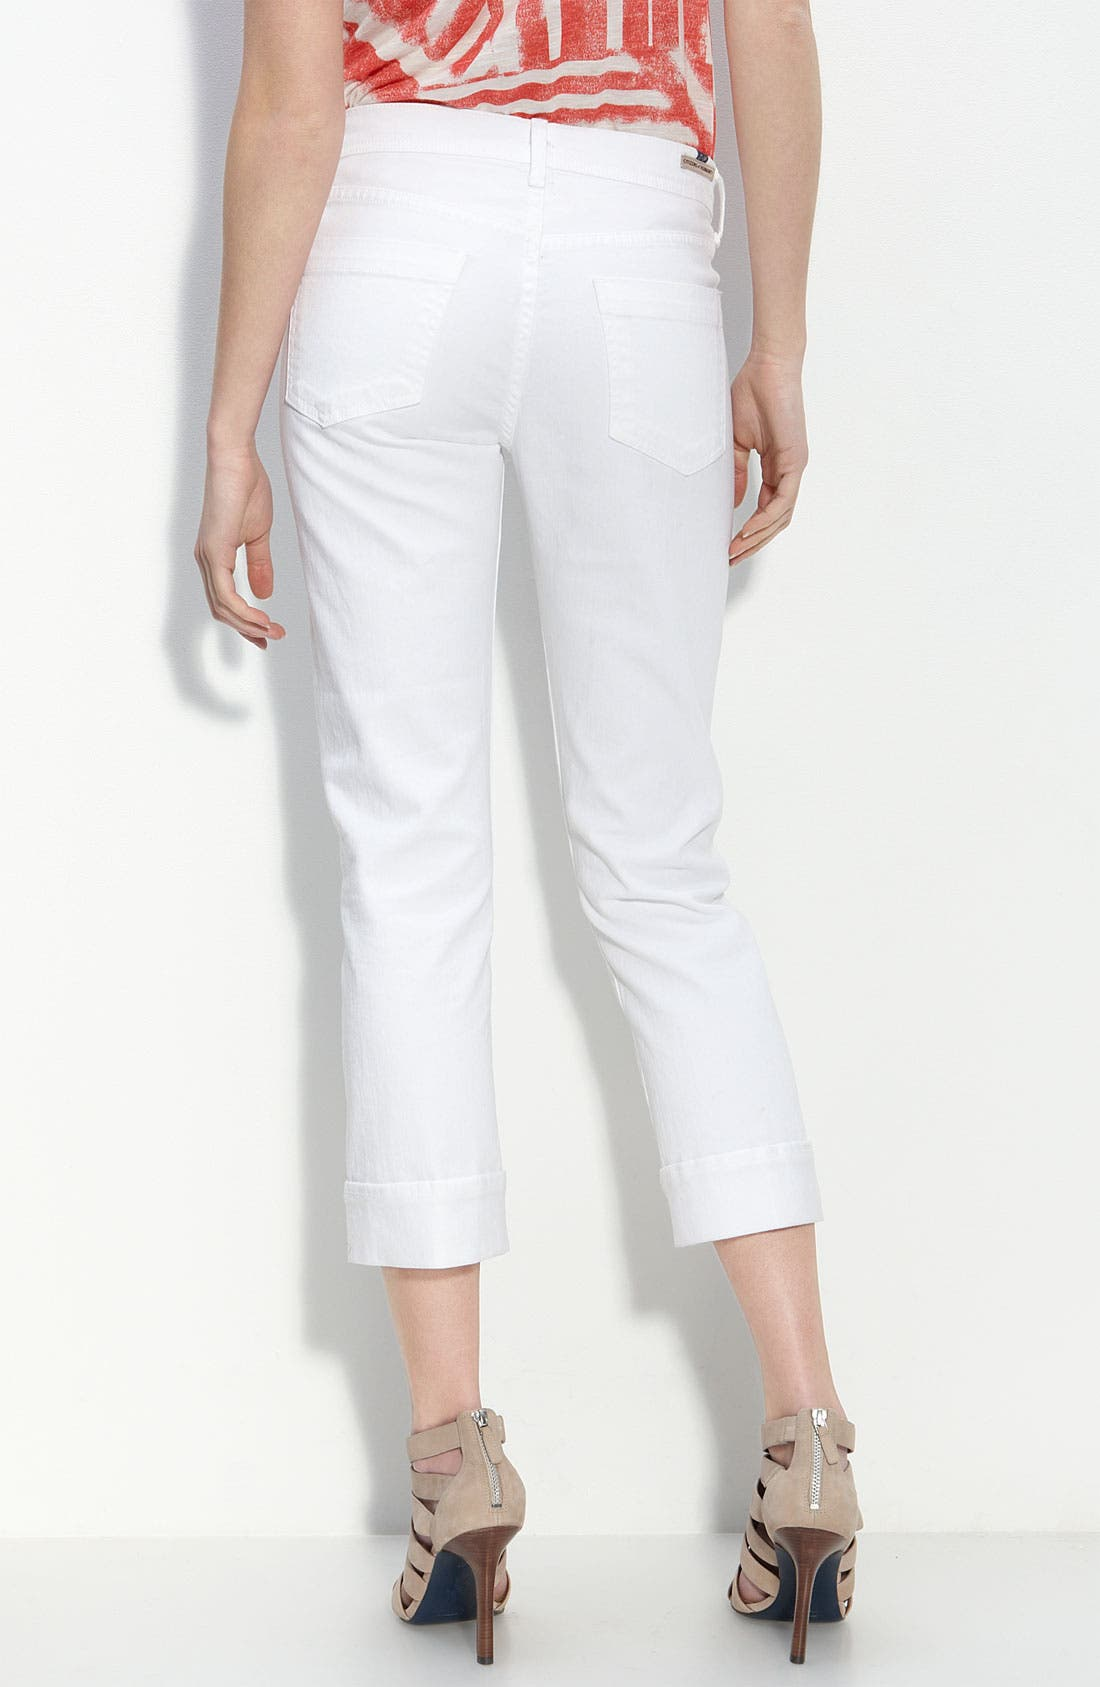 Alternate Image 2  - Citizens of Humanity 'Dani' Stretch Denim Capri Pants (Santorini Wash)